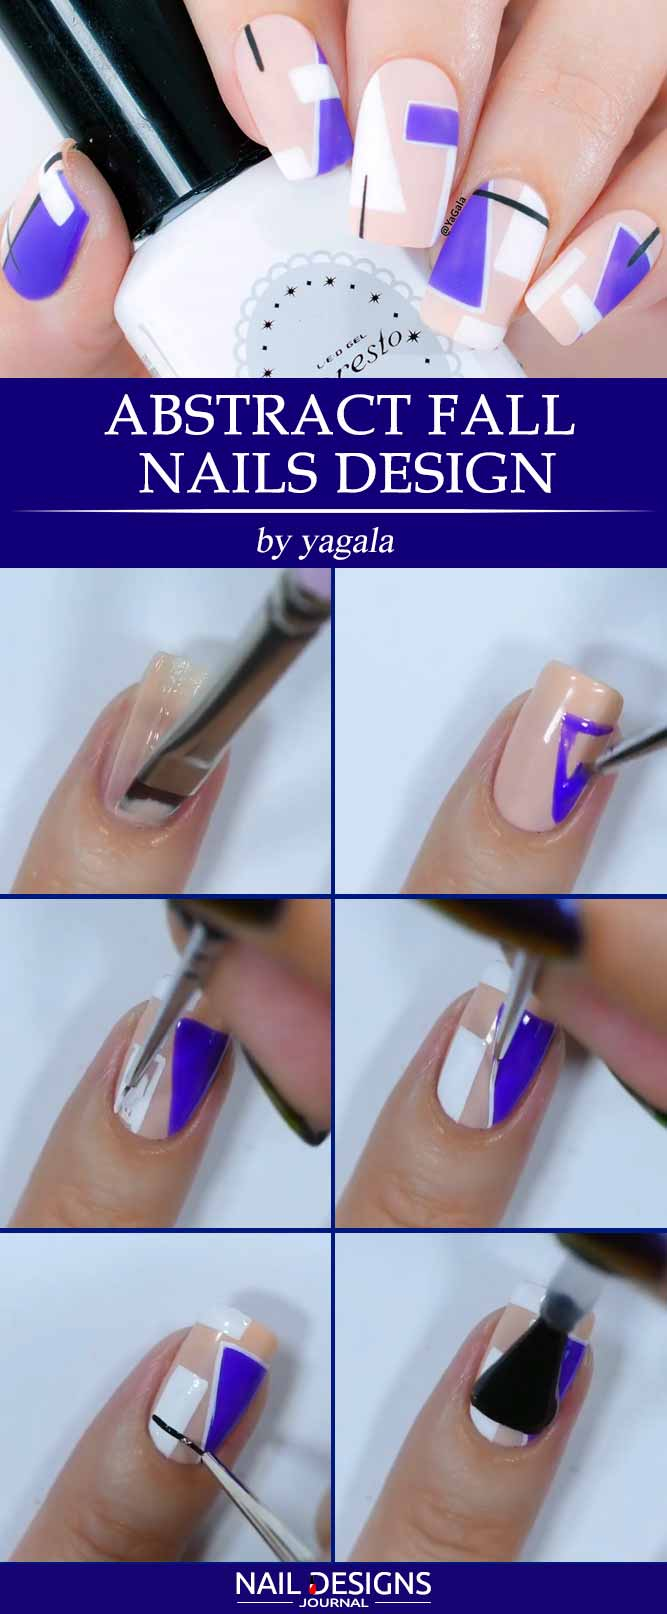 Abstract Fall Nails Design